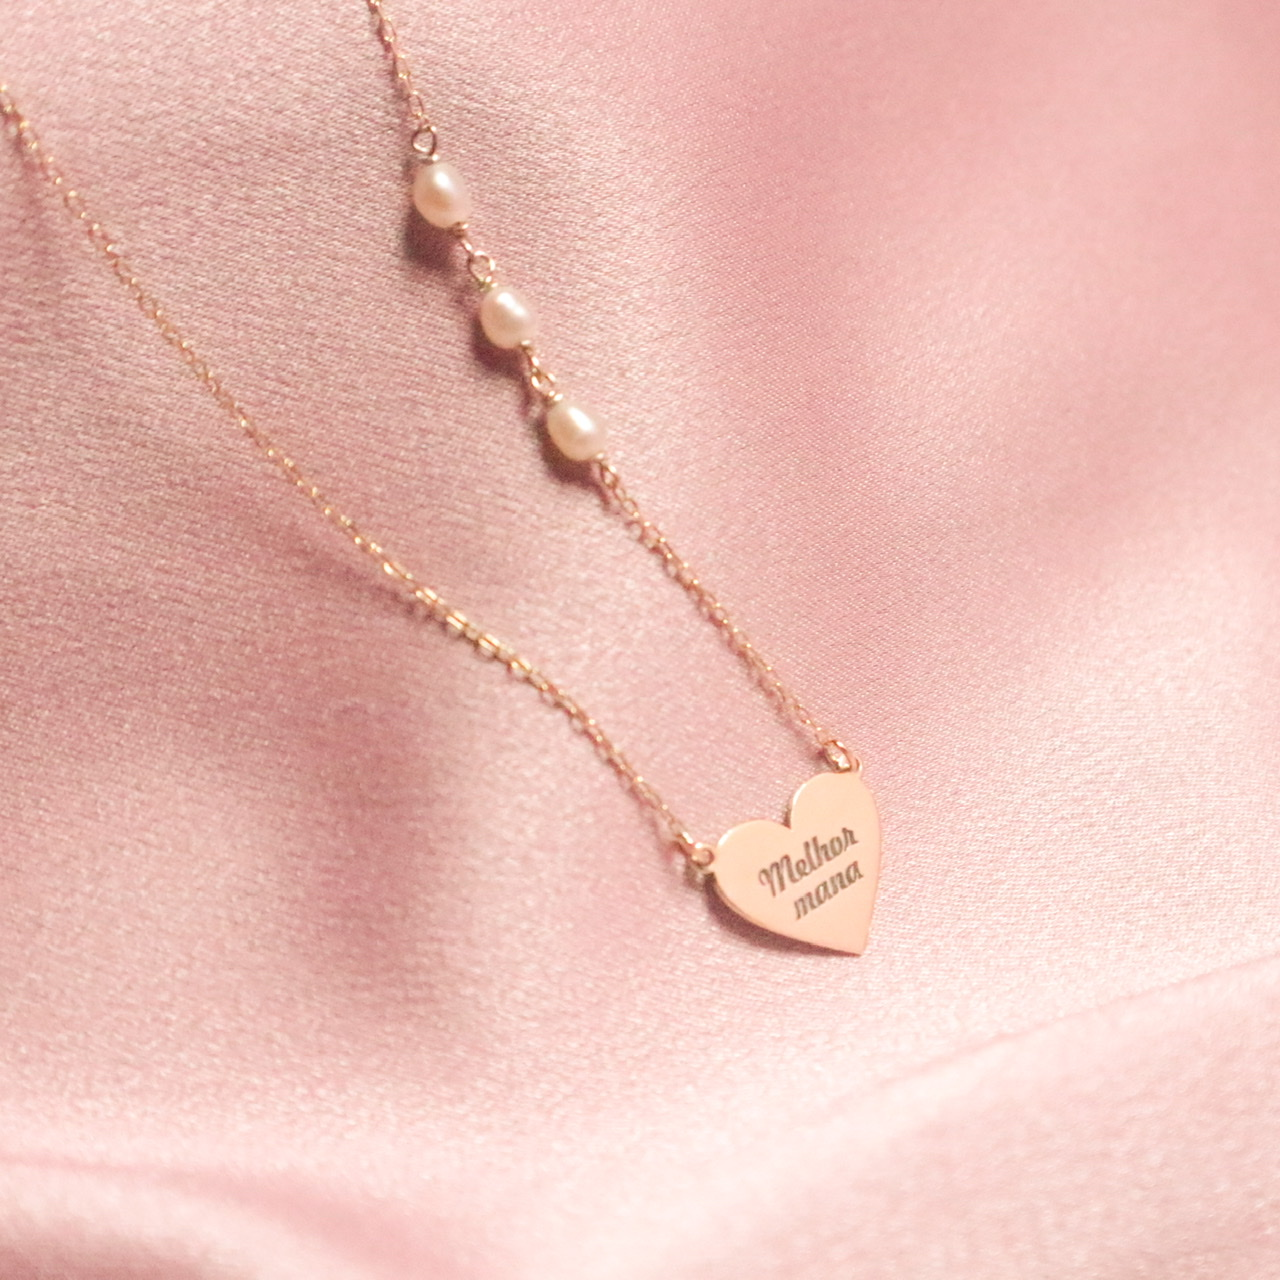 Heart engraved necklace